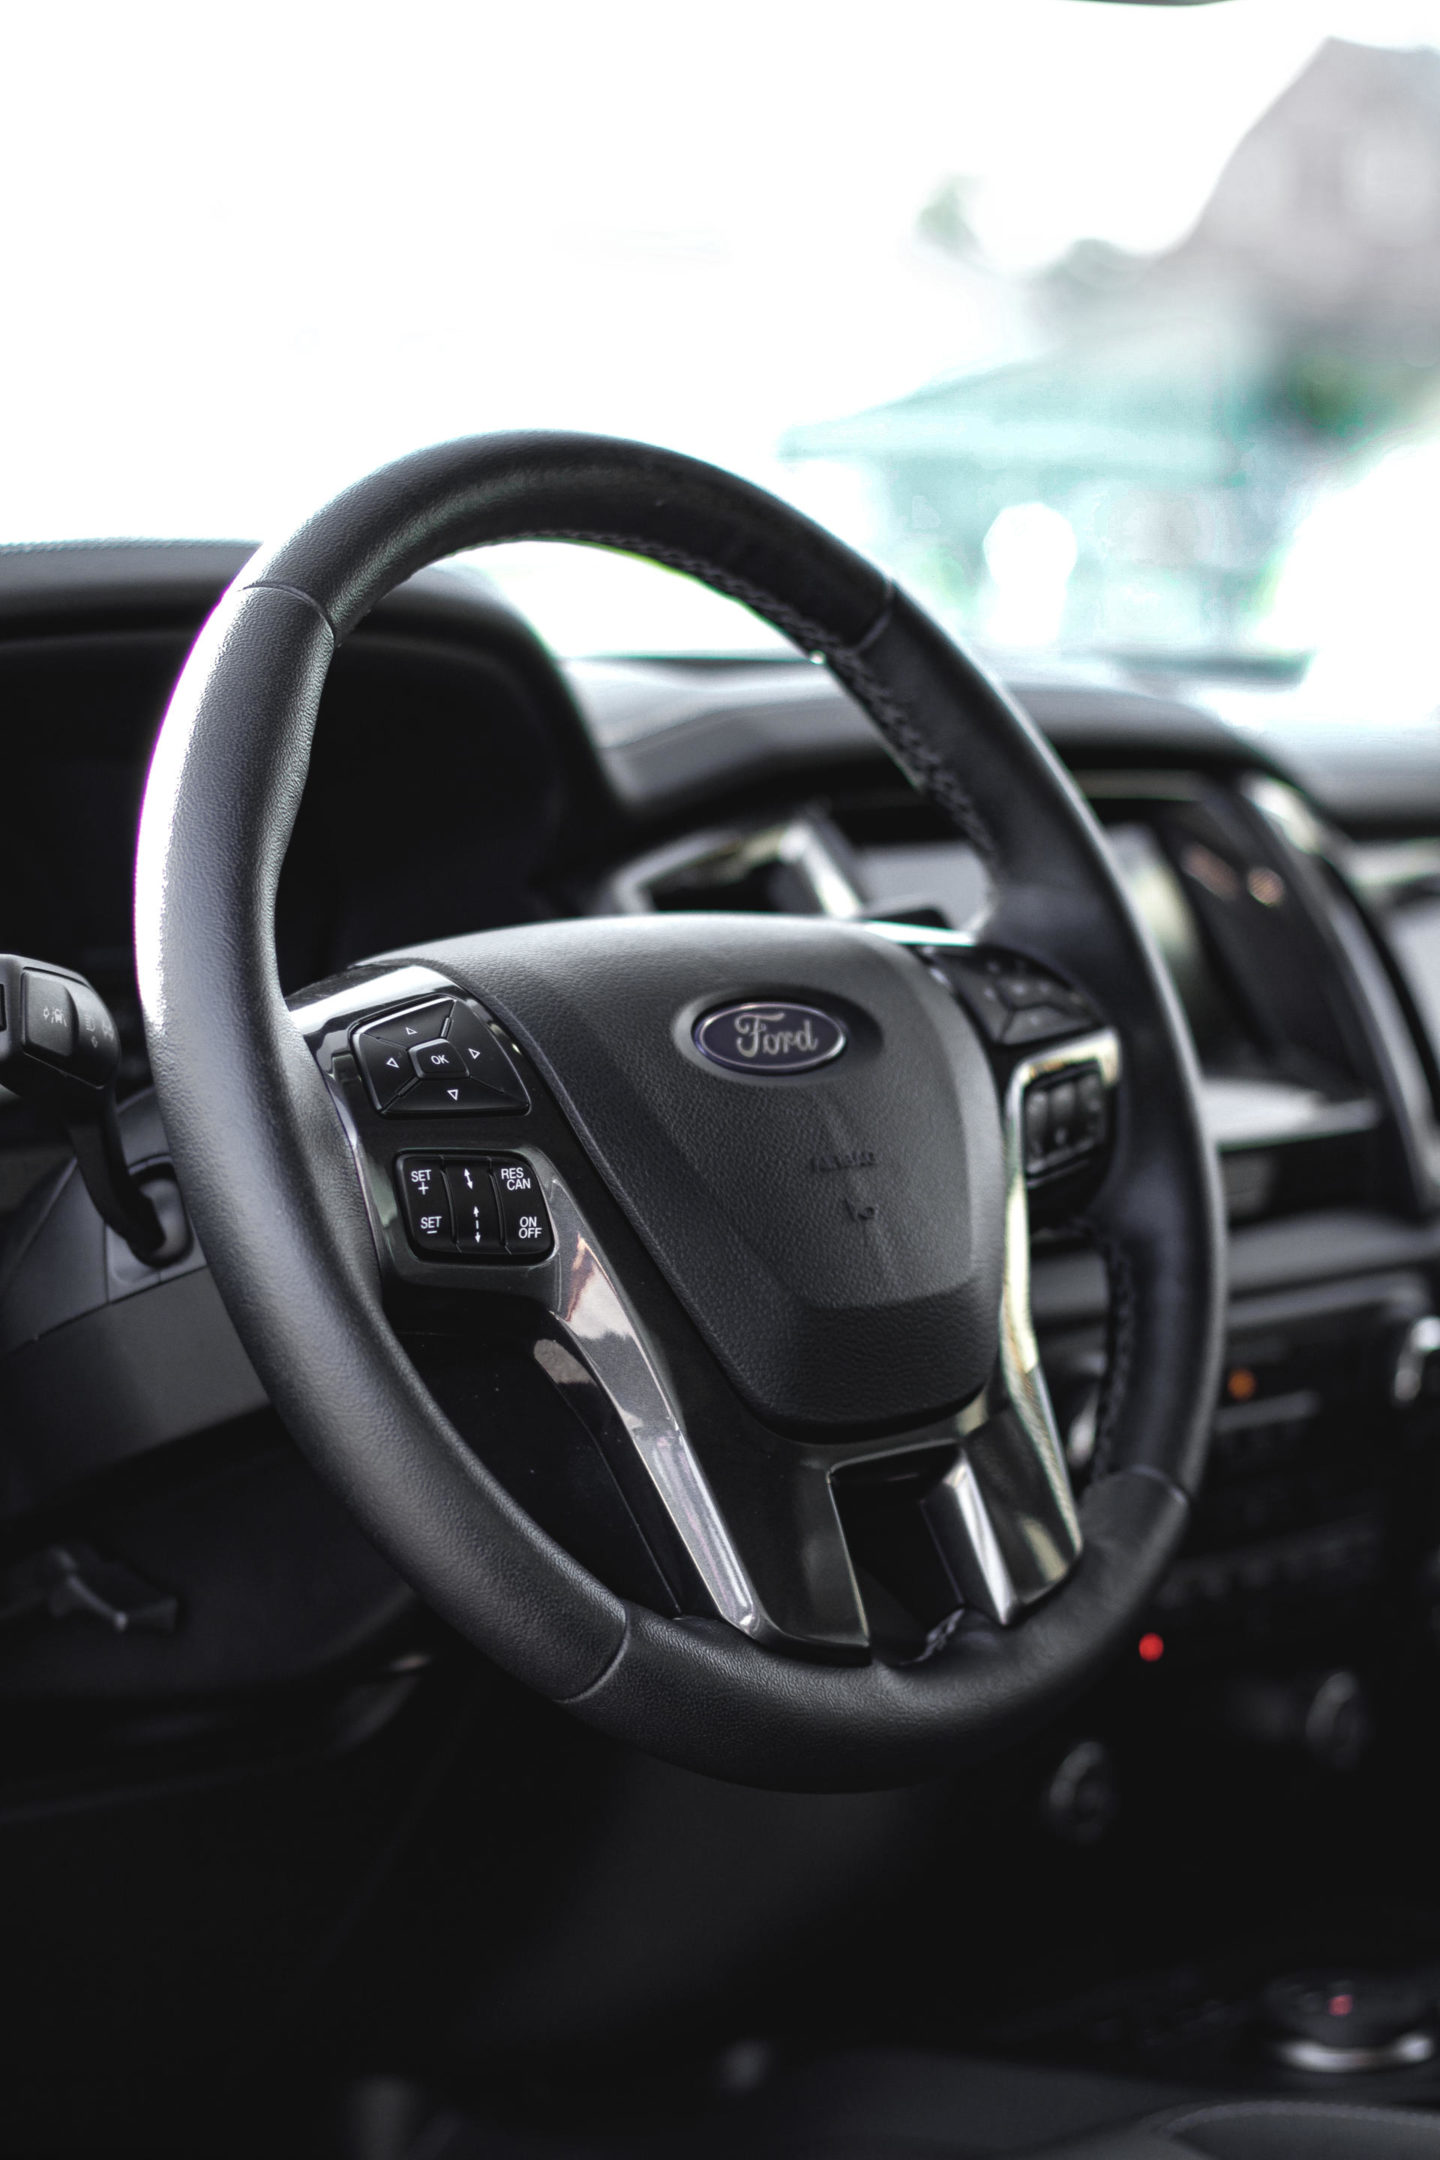 Ford Ranger Lariat Steering Wheel